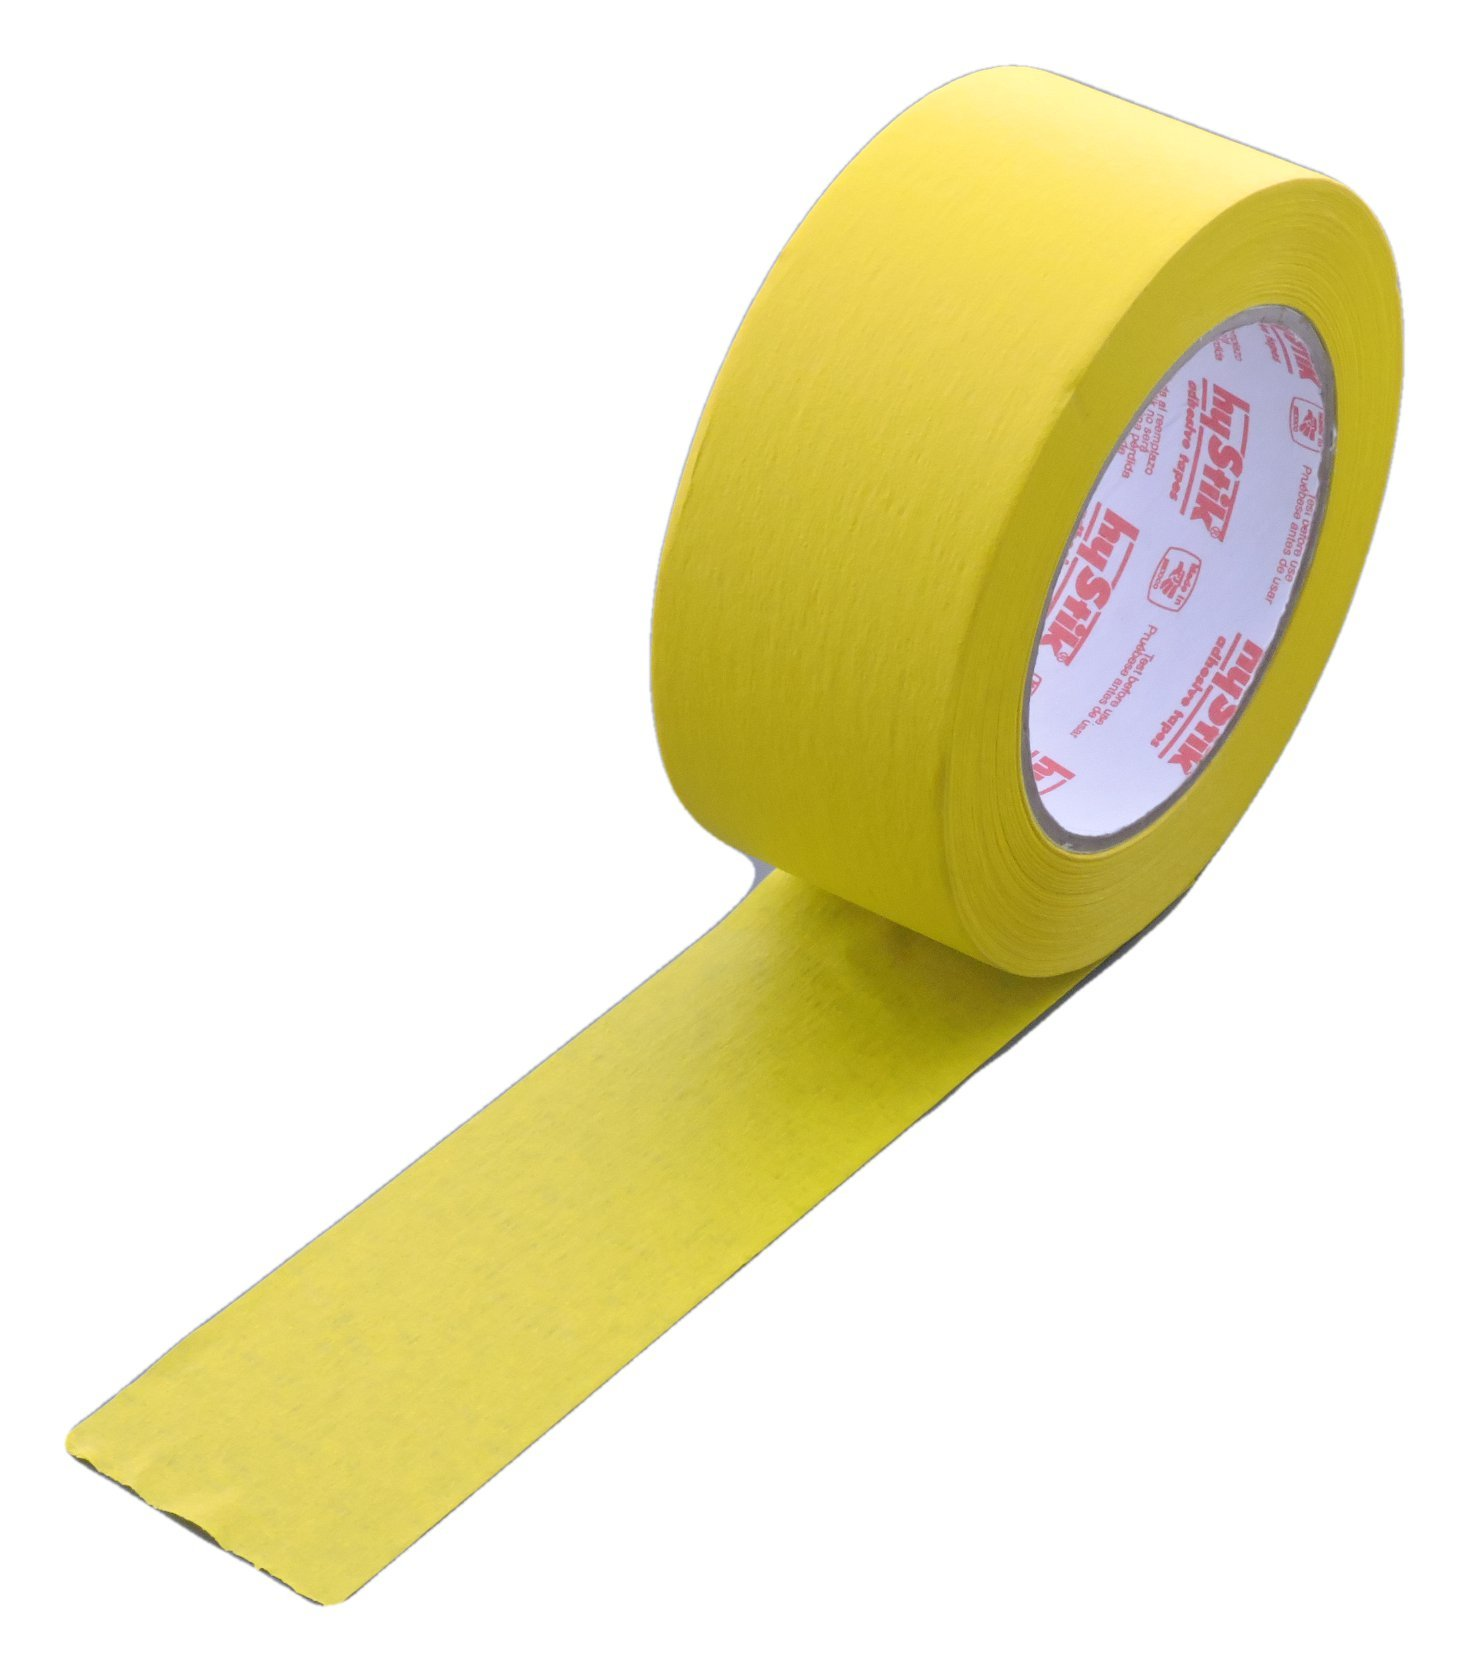 2'' in x 60yd Yellow Masking Tape Extra Sticky PRO Grade High Stick Special Project Painters Tape Painting Trim Arts Crafts School Home Office 21 Days 48MM x 55M 1.88 inch